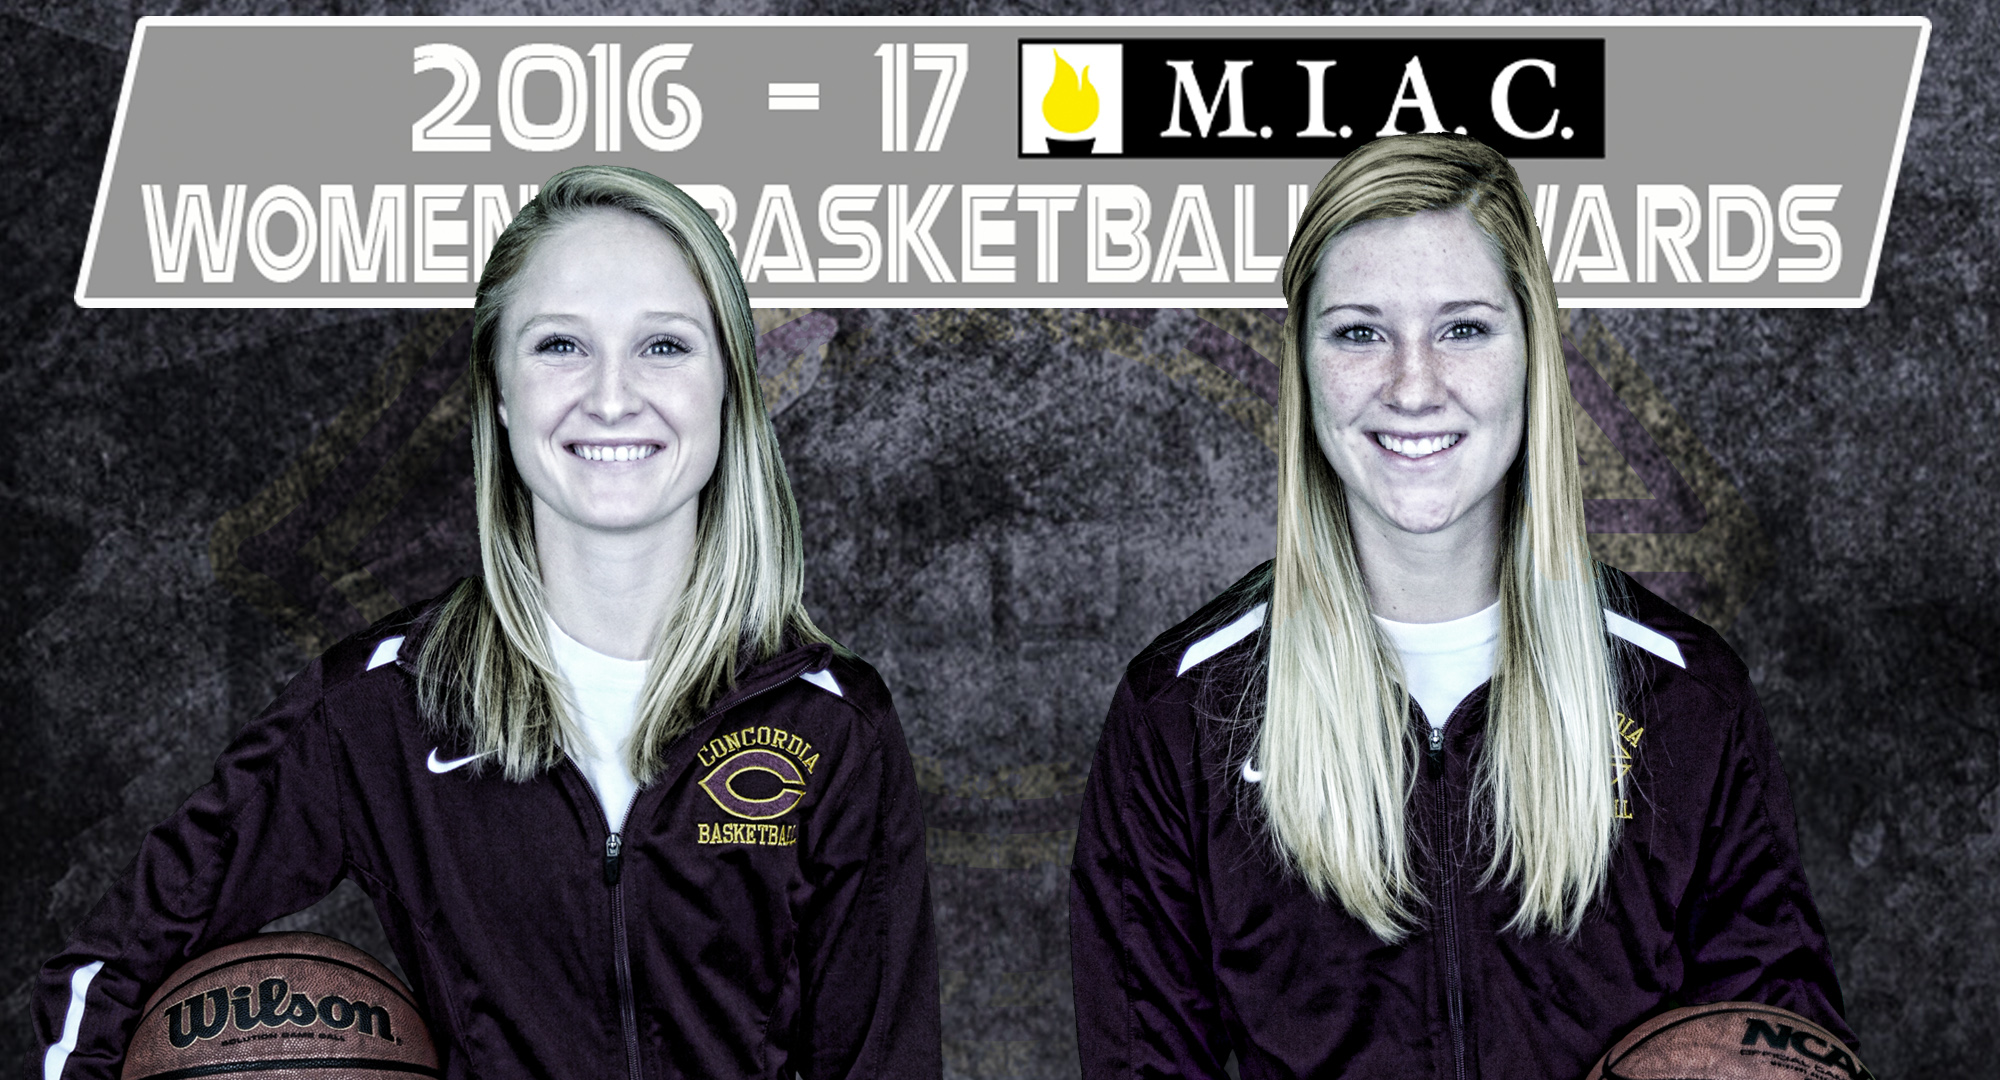 Greta Walsh and Jenna Januschka earned MIAC All-Conference honors.